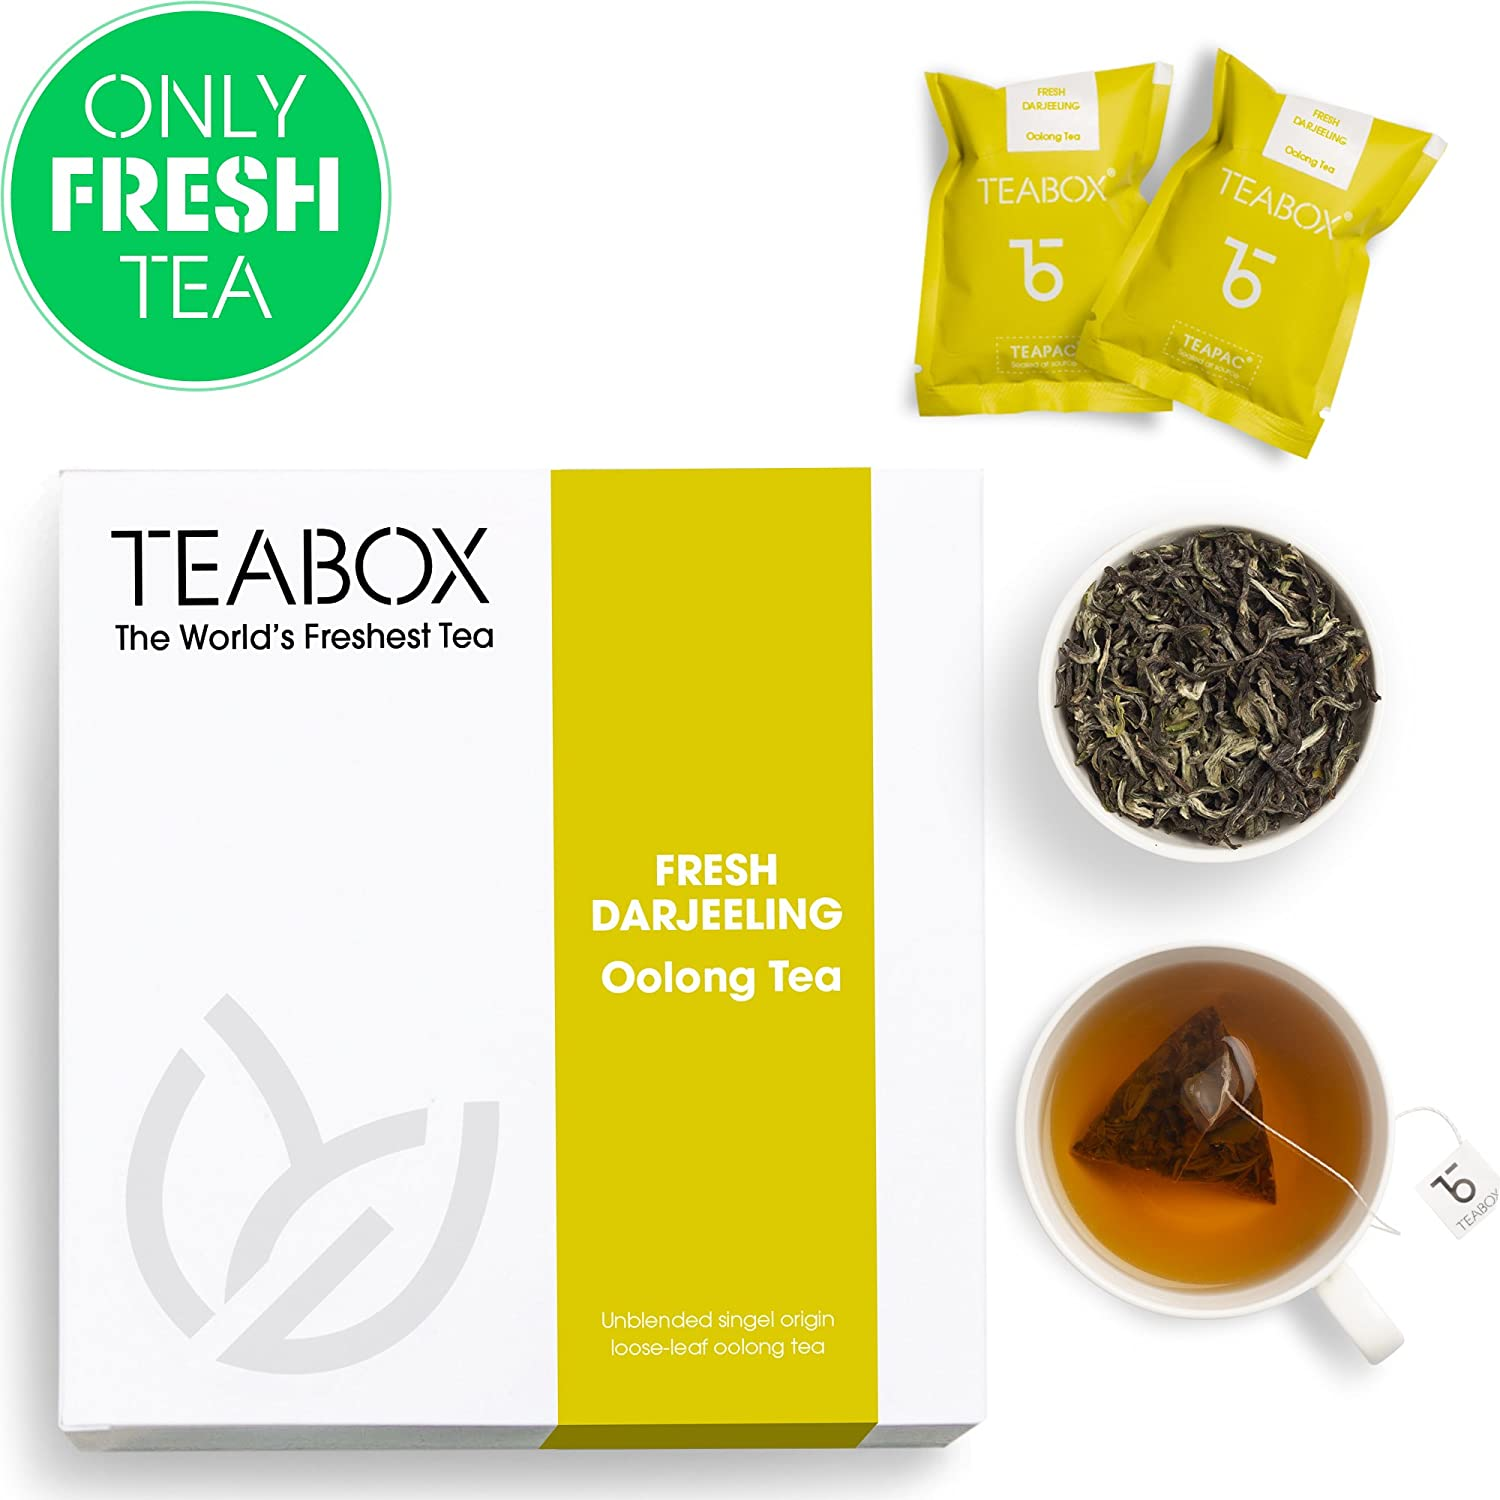 Teabox Darjeeling Oolong Tea, 16 Tea Bags | 100% Pure Natural Slimming Oolong for Weightloss | Low Caffeine and High Anti-Oxidants | Sealed-at-Source Freshness from India